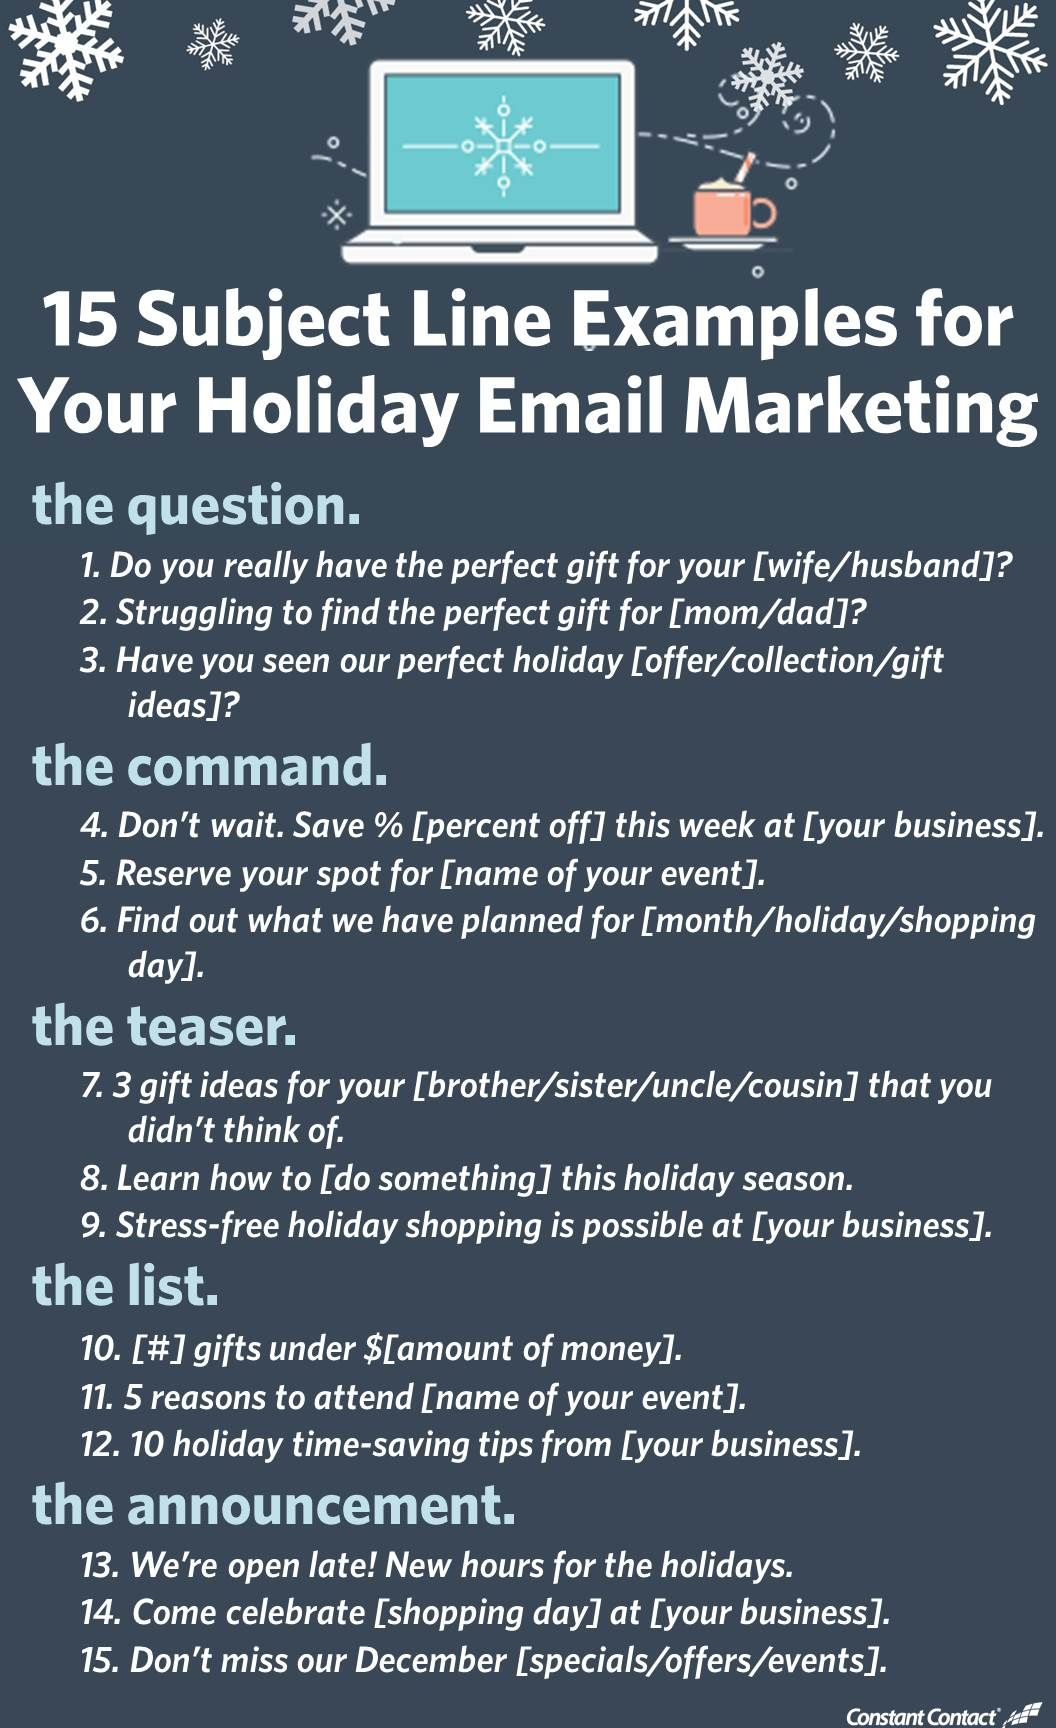 15 Subject Line Examples For Your Email Marketing Email Marketing